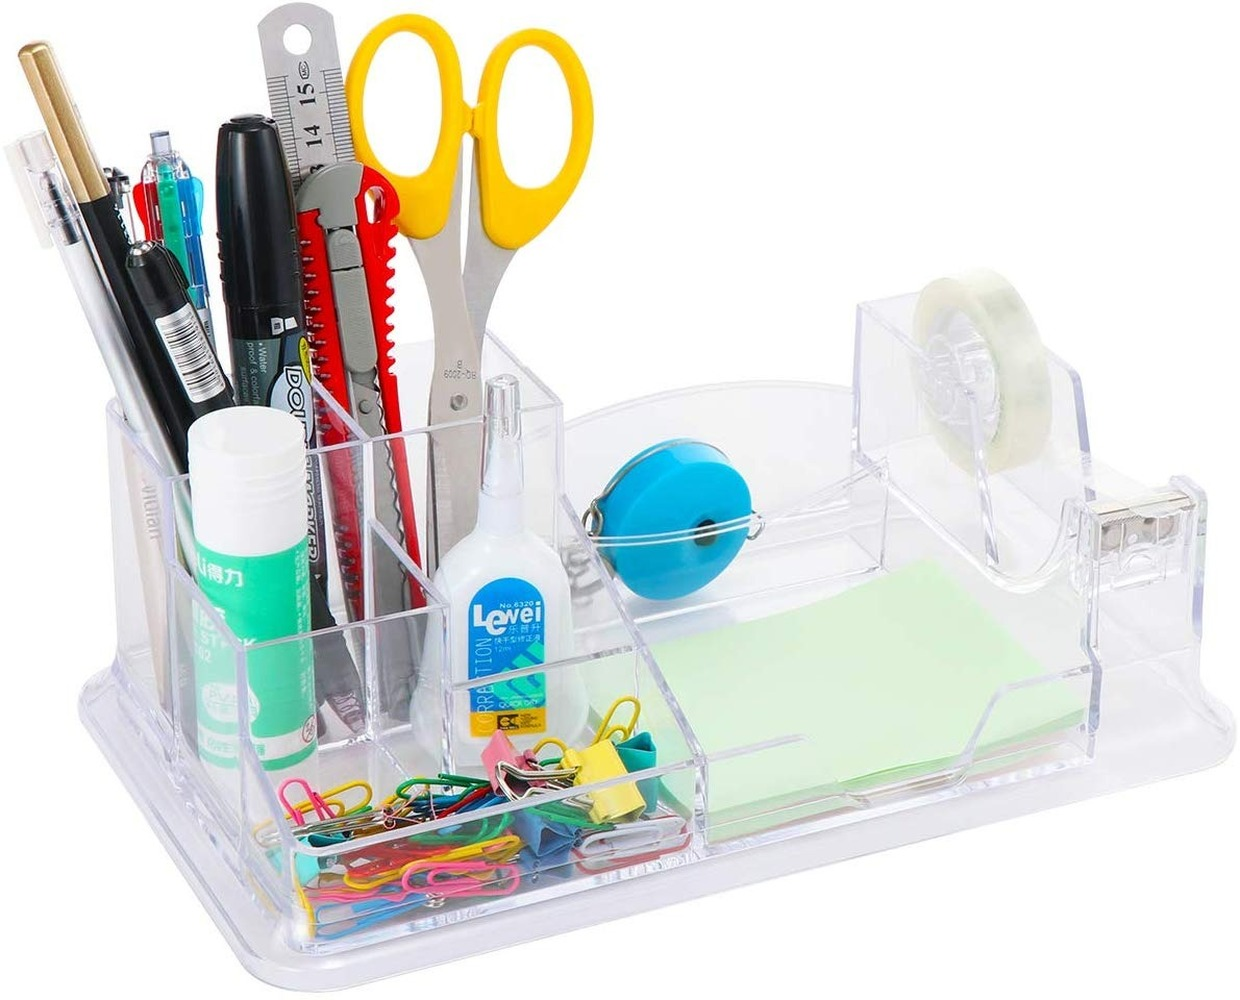 Fashion Multi-function Pencil Holder Pen Holders Office Supplies Desk Organizer For Birthday Gift Make-up Tools Holder